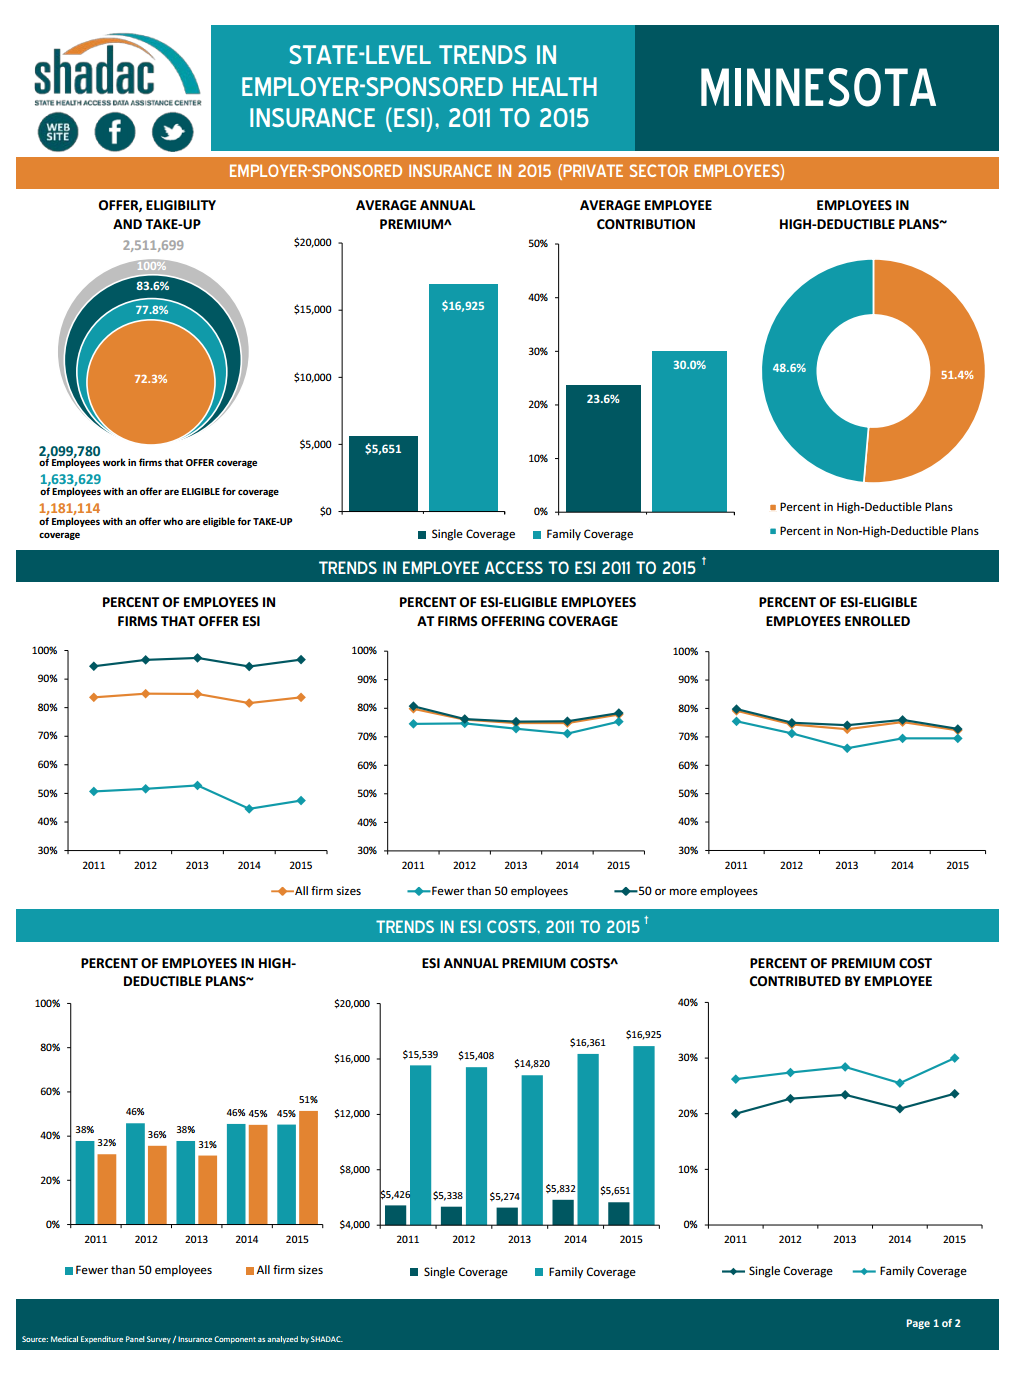 Chartbook Fact Health 2011-2015 In State Employer-sponsored Trends Insurance Sheets Shadac And State-level